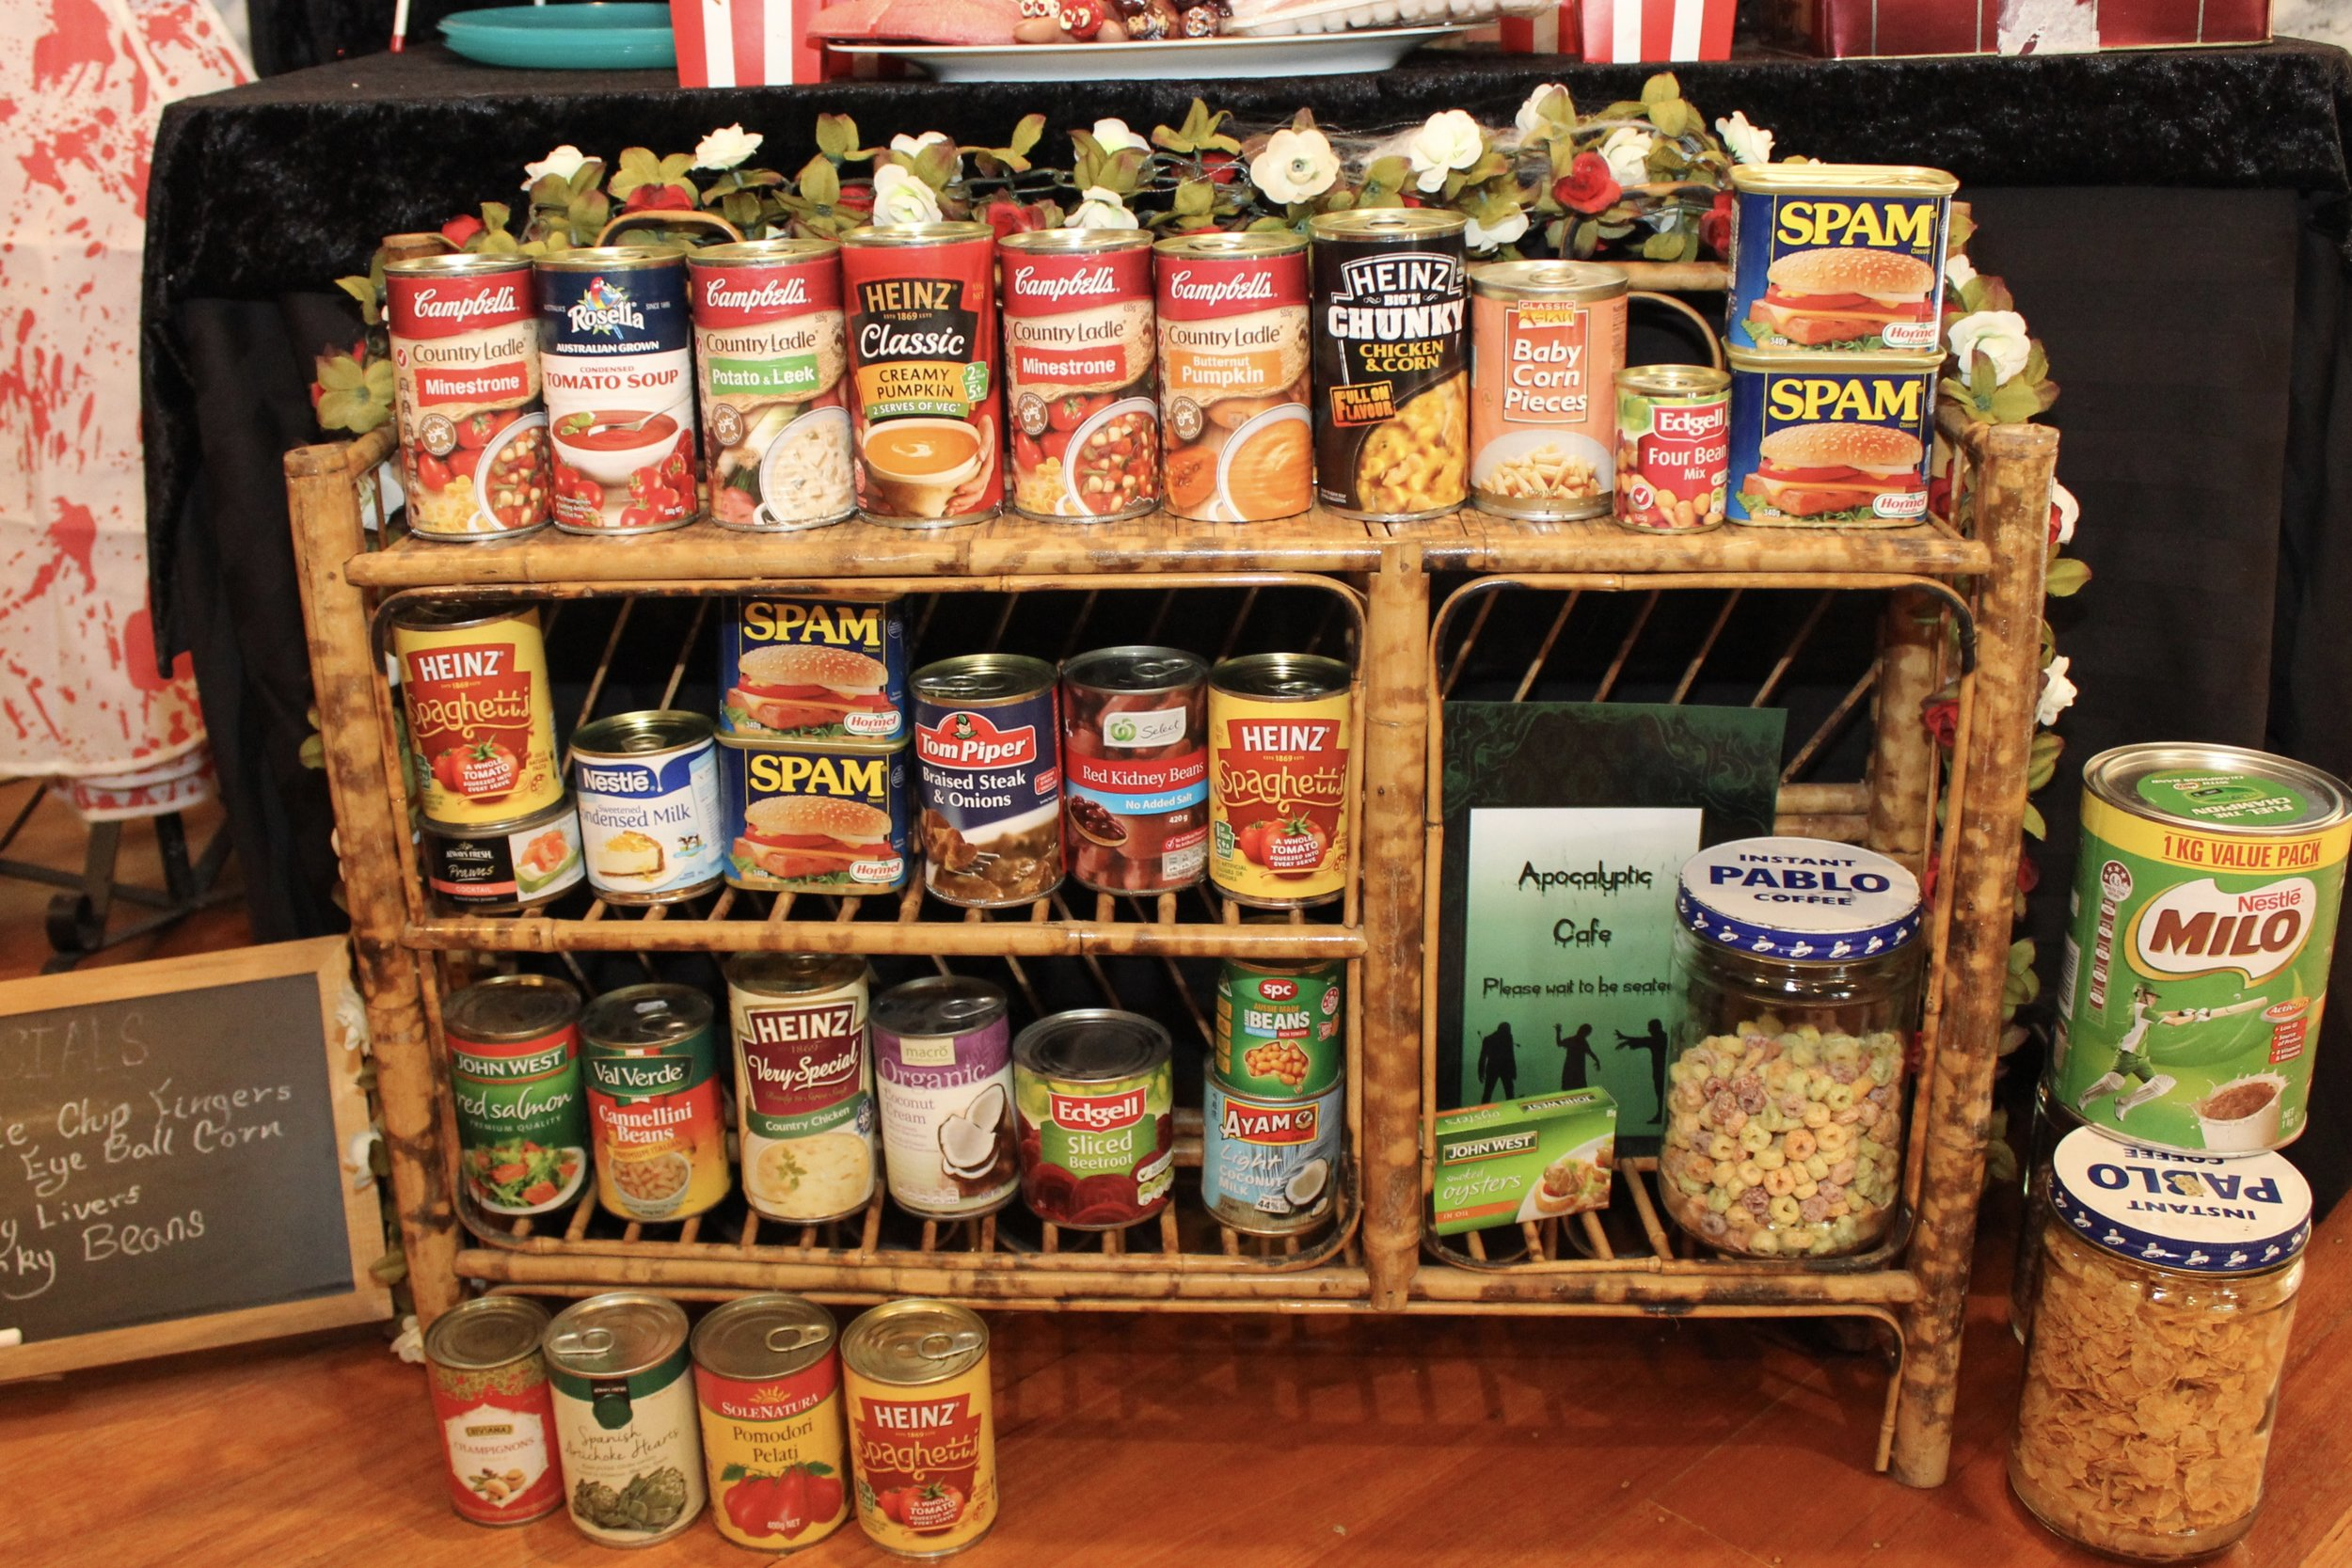 Zombie Apocalypse Cafe with canned foods